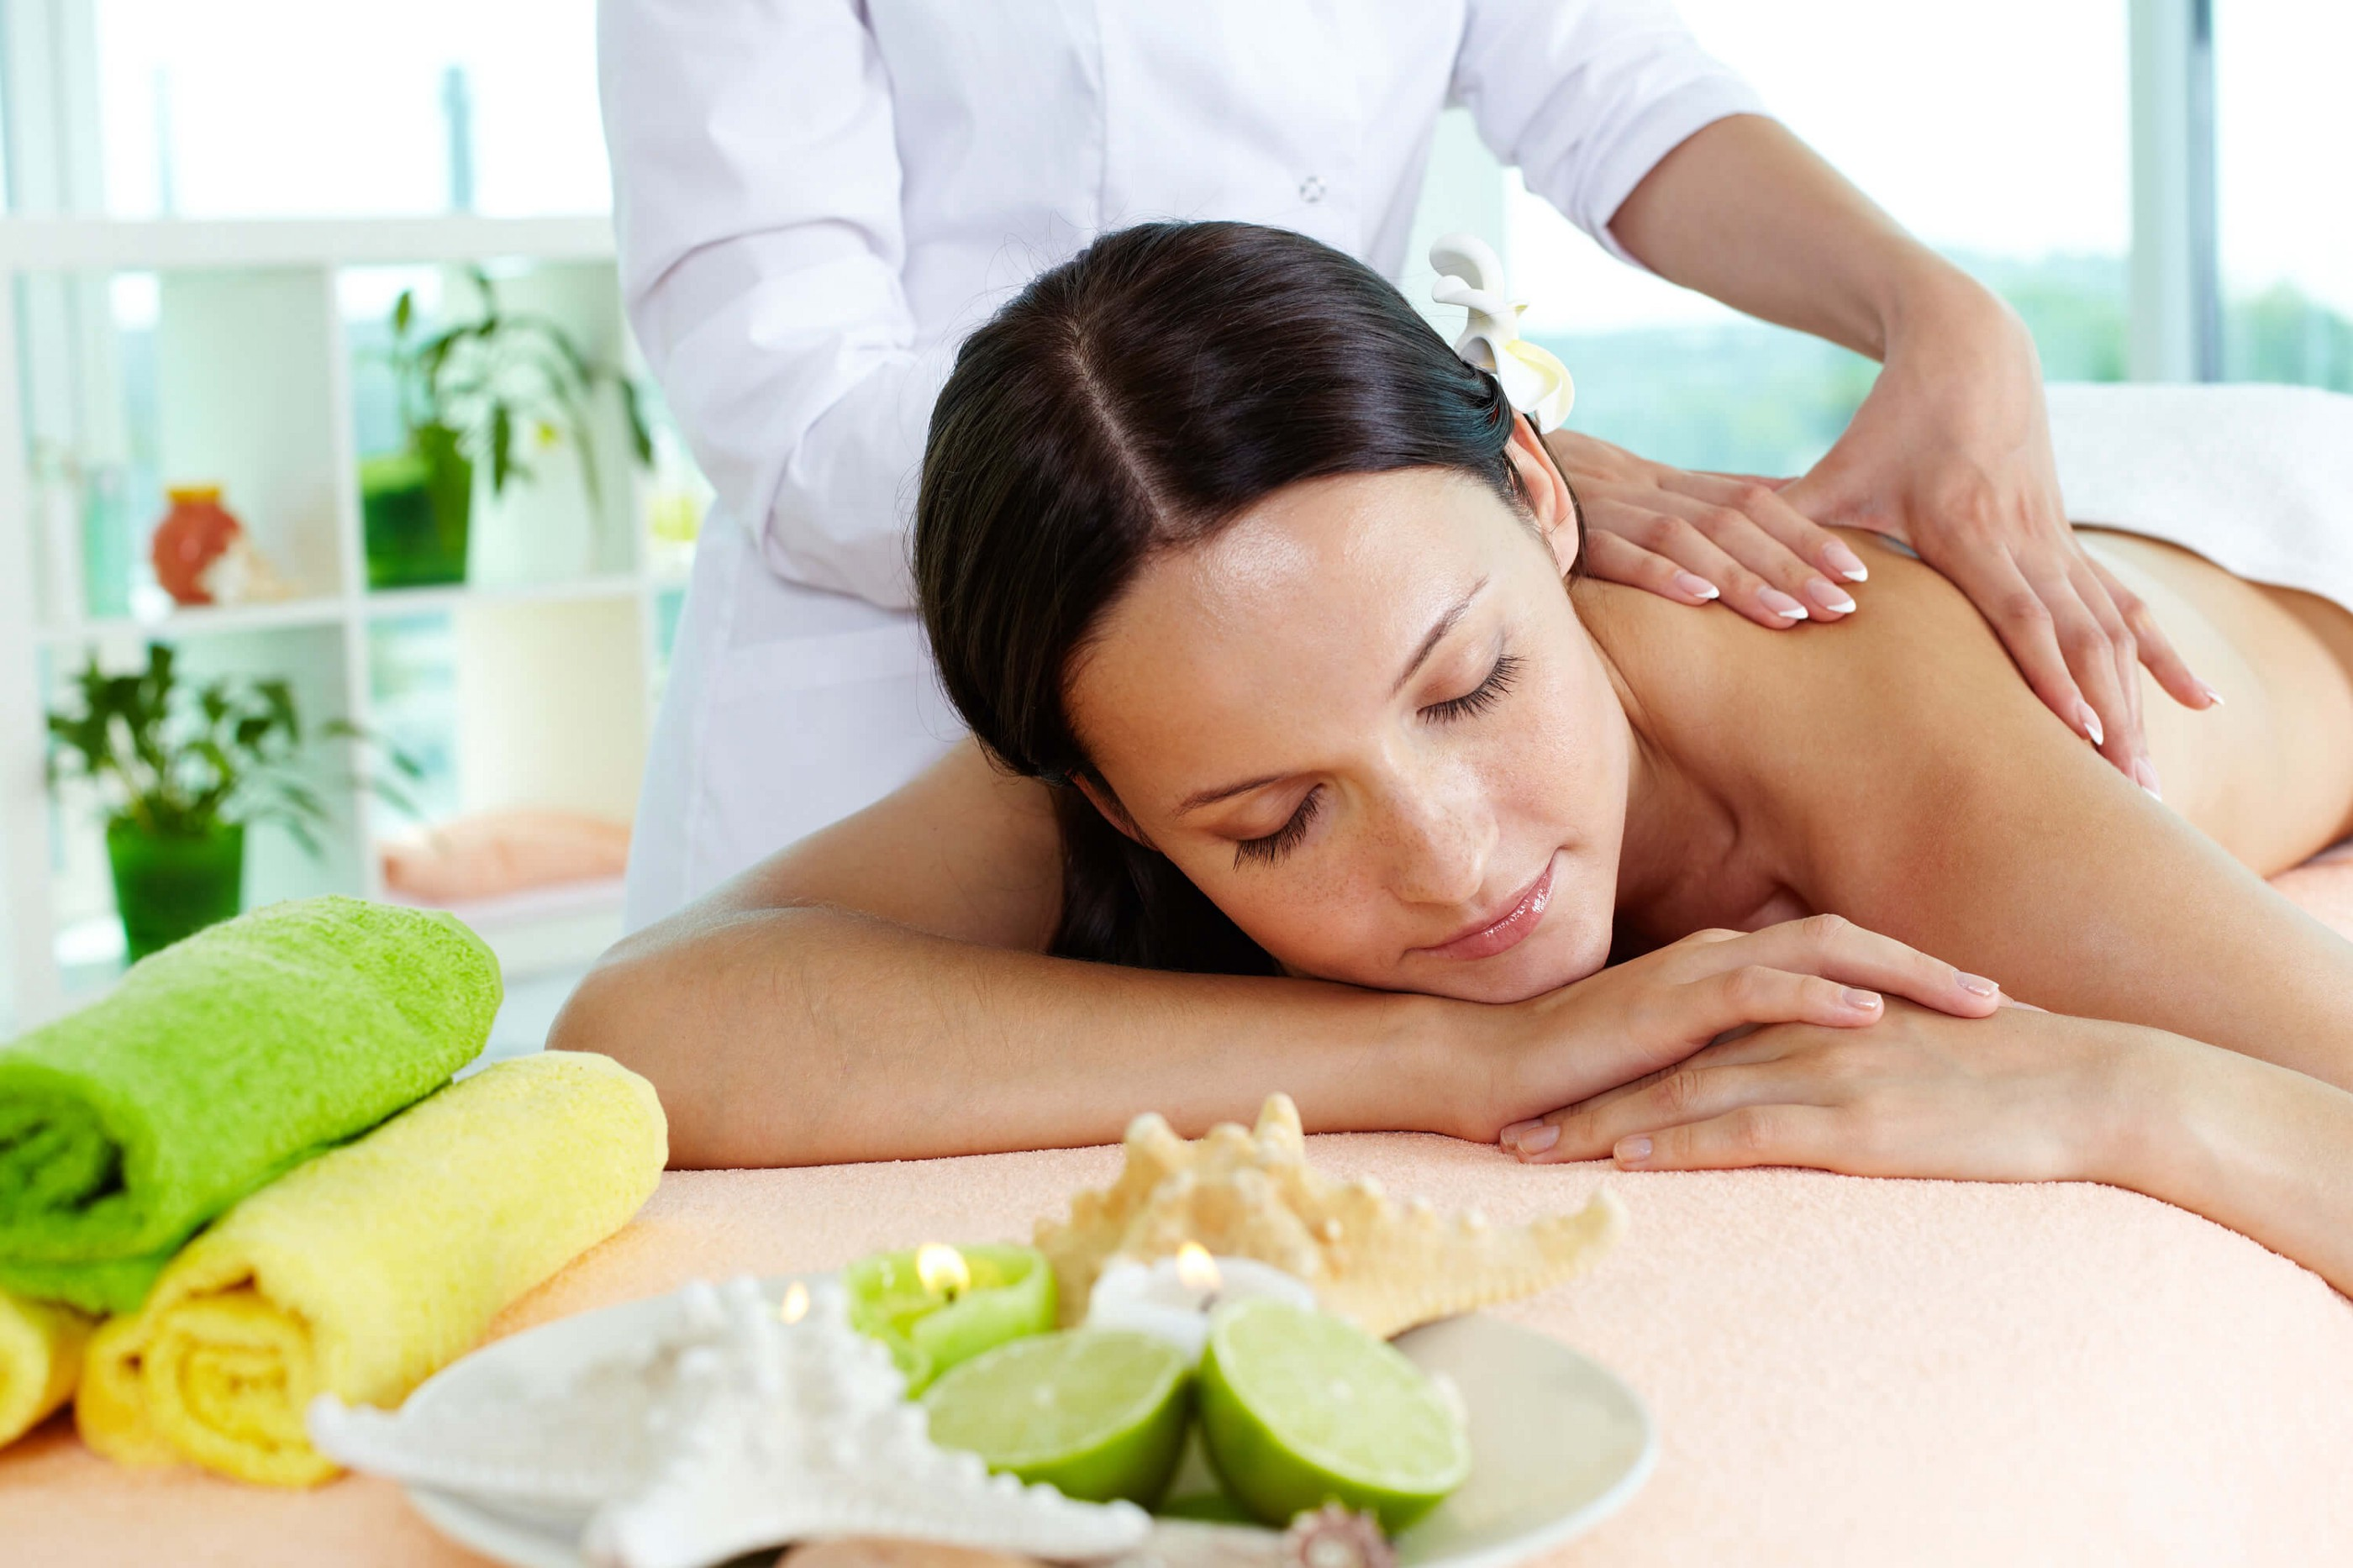 A Sensual Massage know more about sensual massage in london - kevin josephs